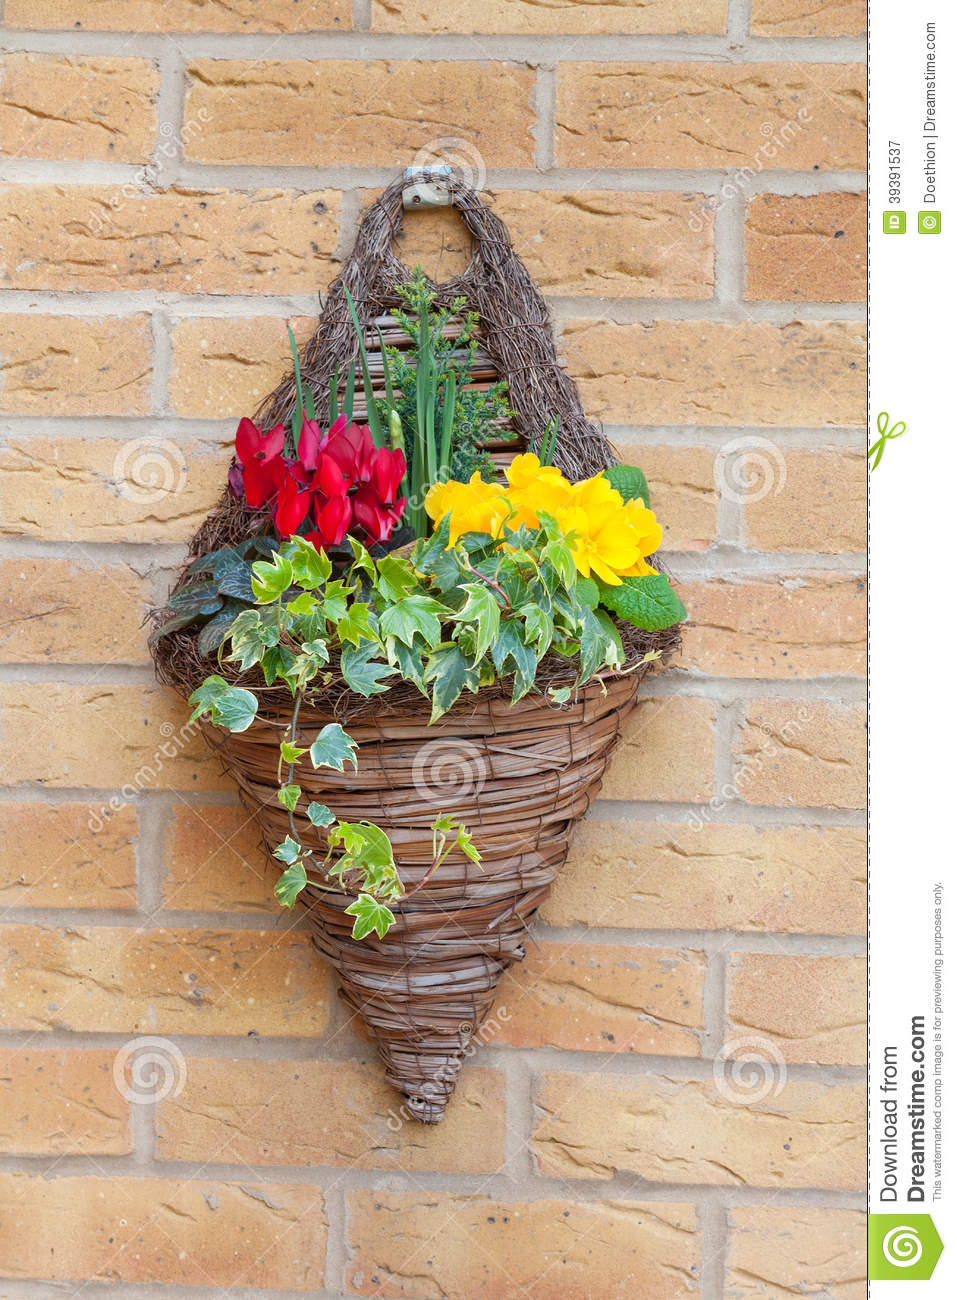 Wall Hanging Air Conditioner Wall Mounted Hanging Basket With Spring Flowers Stock ...